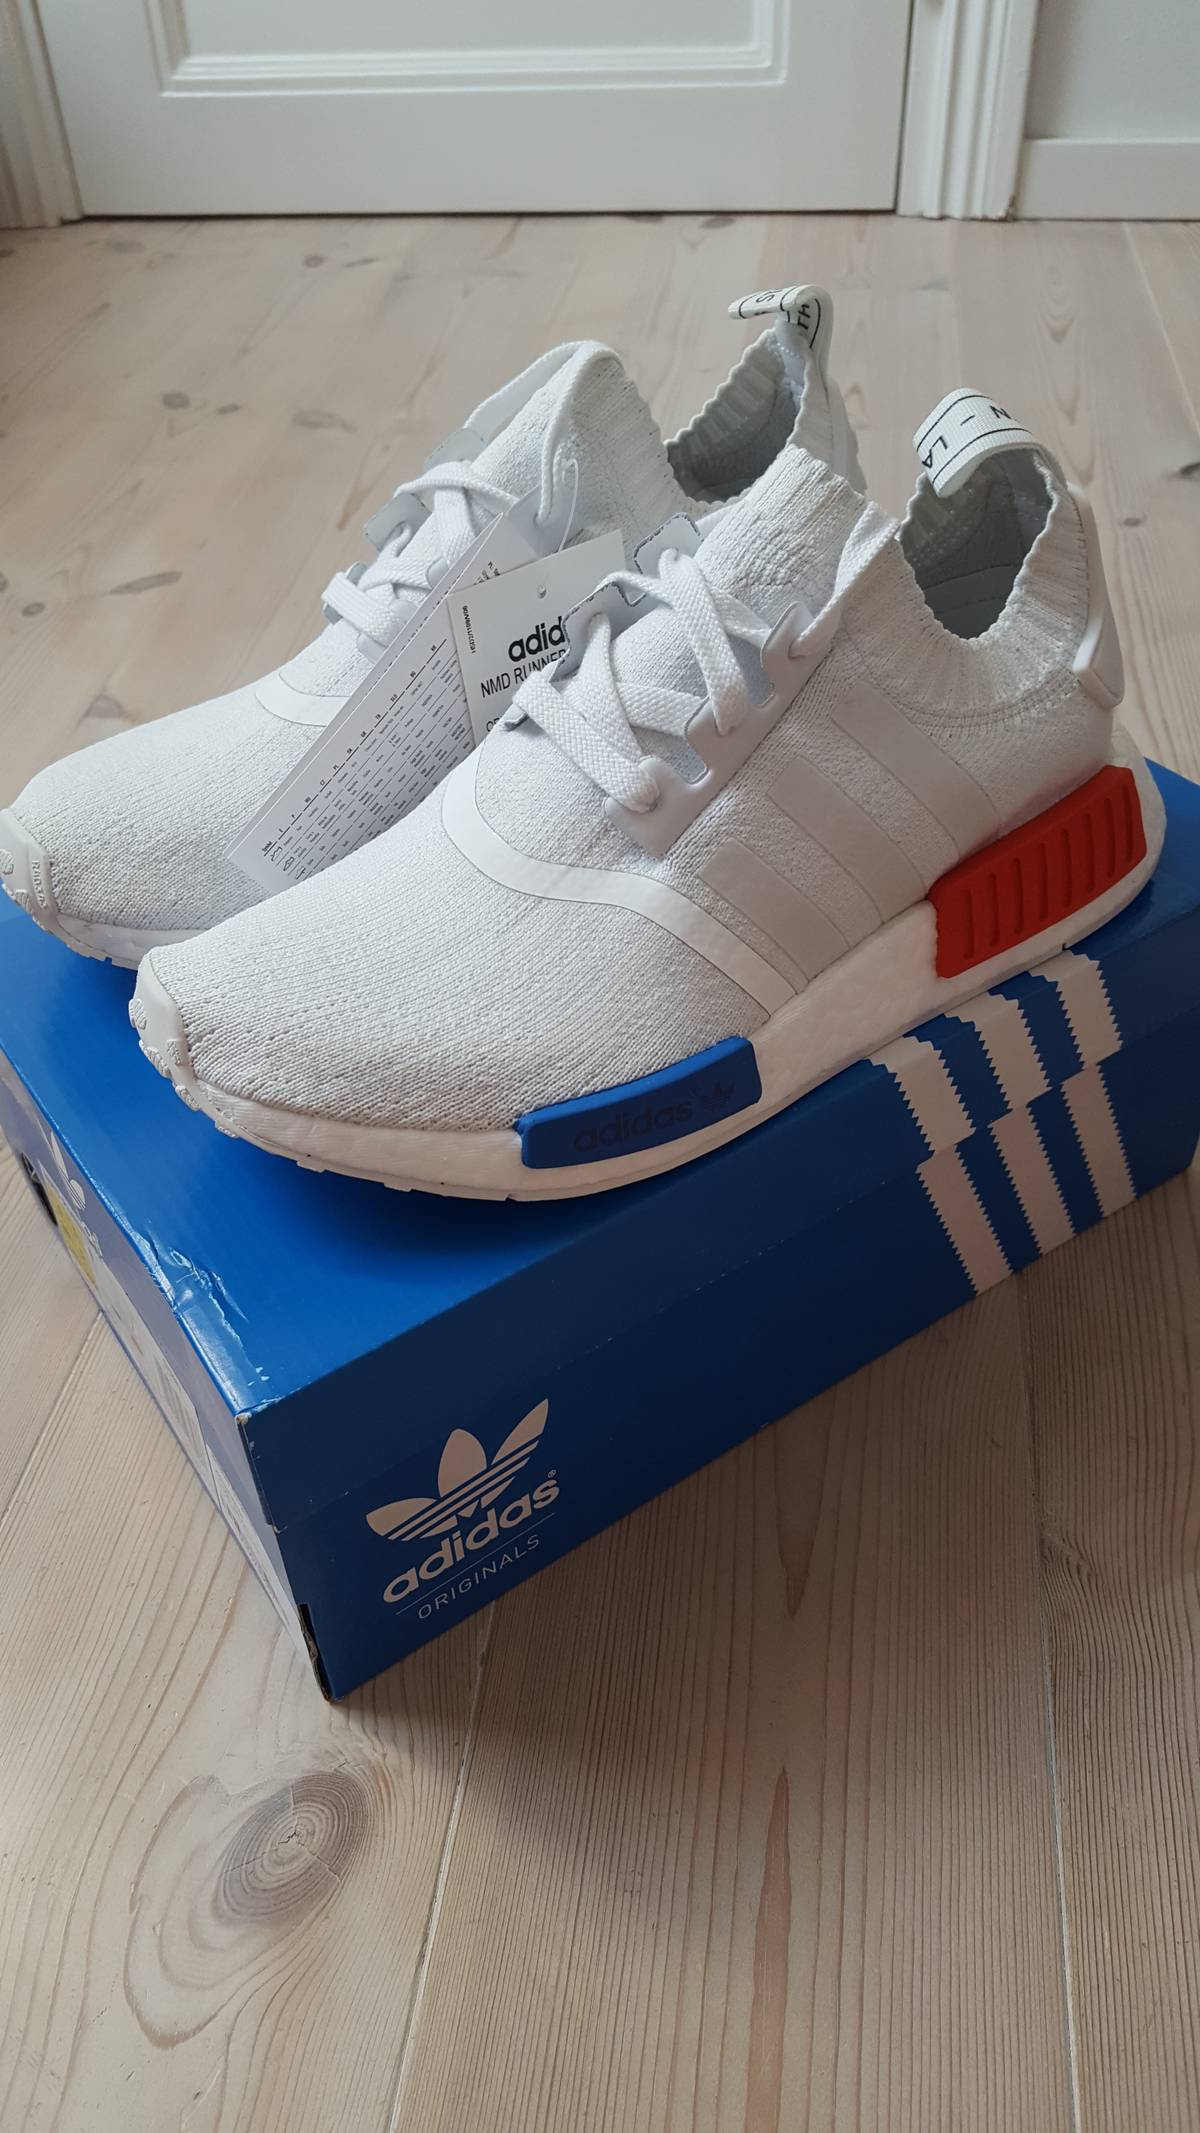 4a760a908b4ad Adidas NMD R1 PK OG WHITE Size 6 - Hi-Top Sneakers for Sale - Grailed